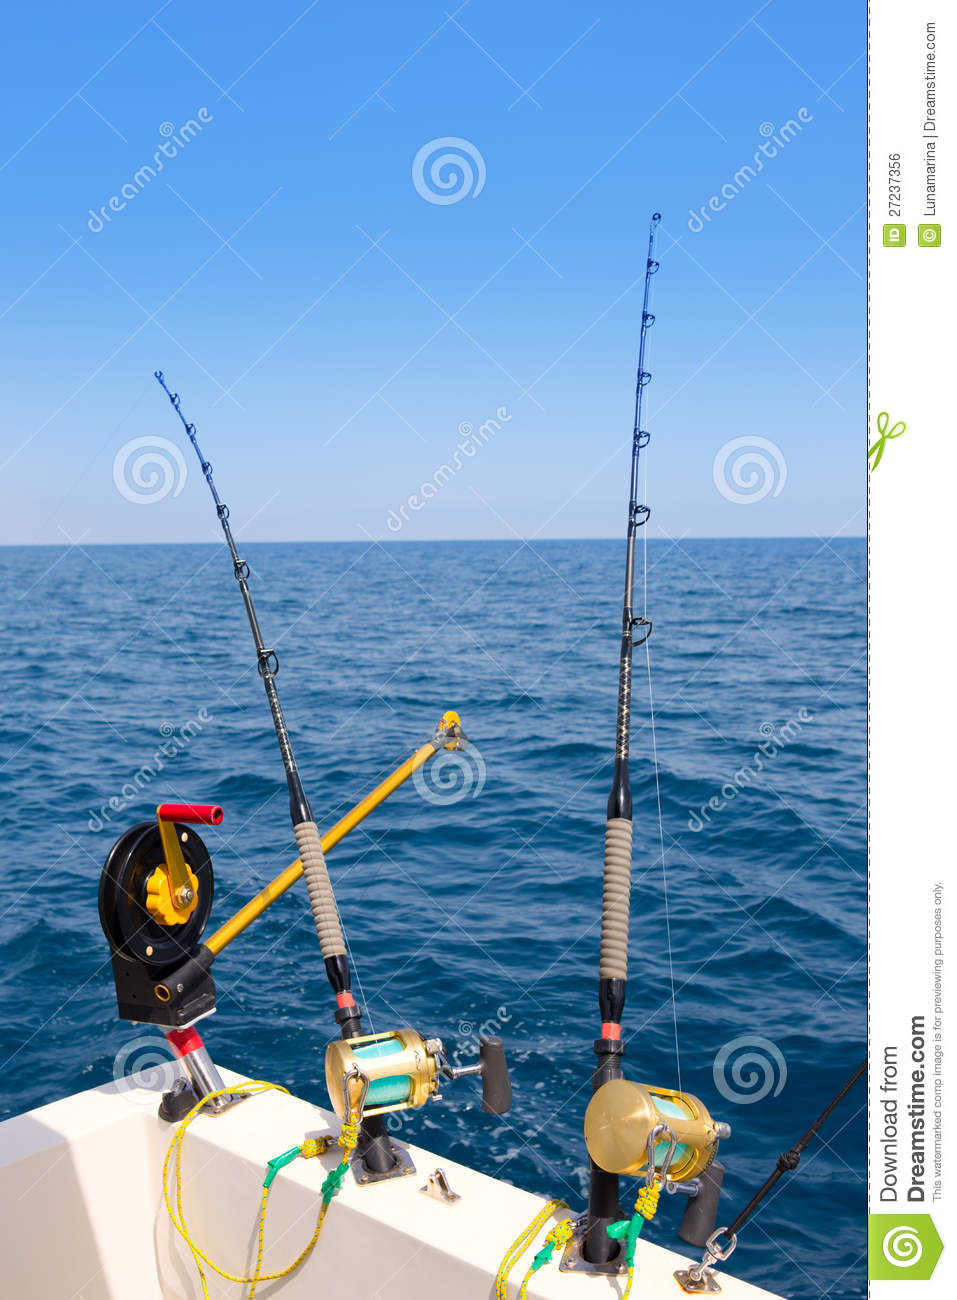 Boat Trolling Fishing Gear Downrigger And Two Rods Stock Photo - Image: 27237356